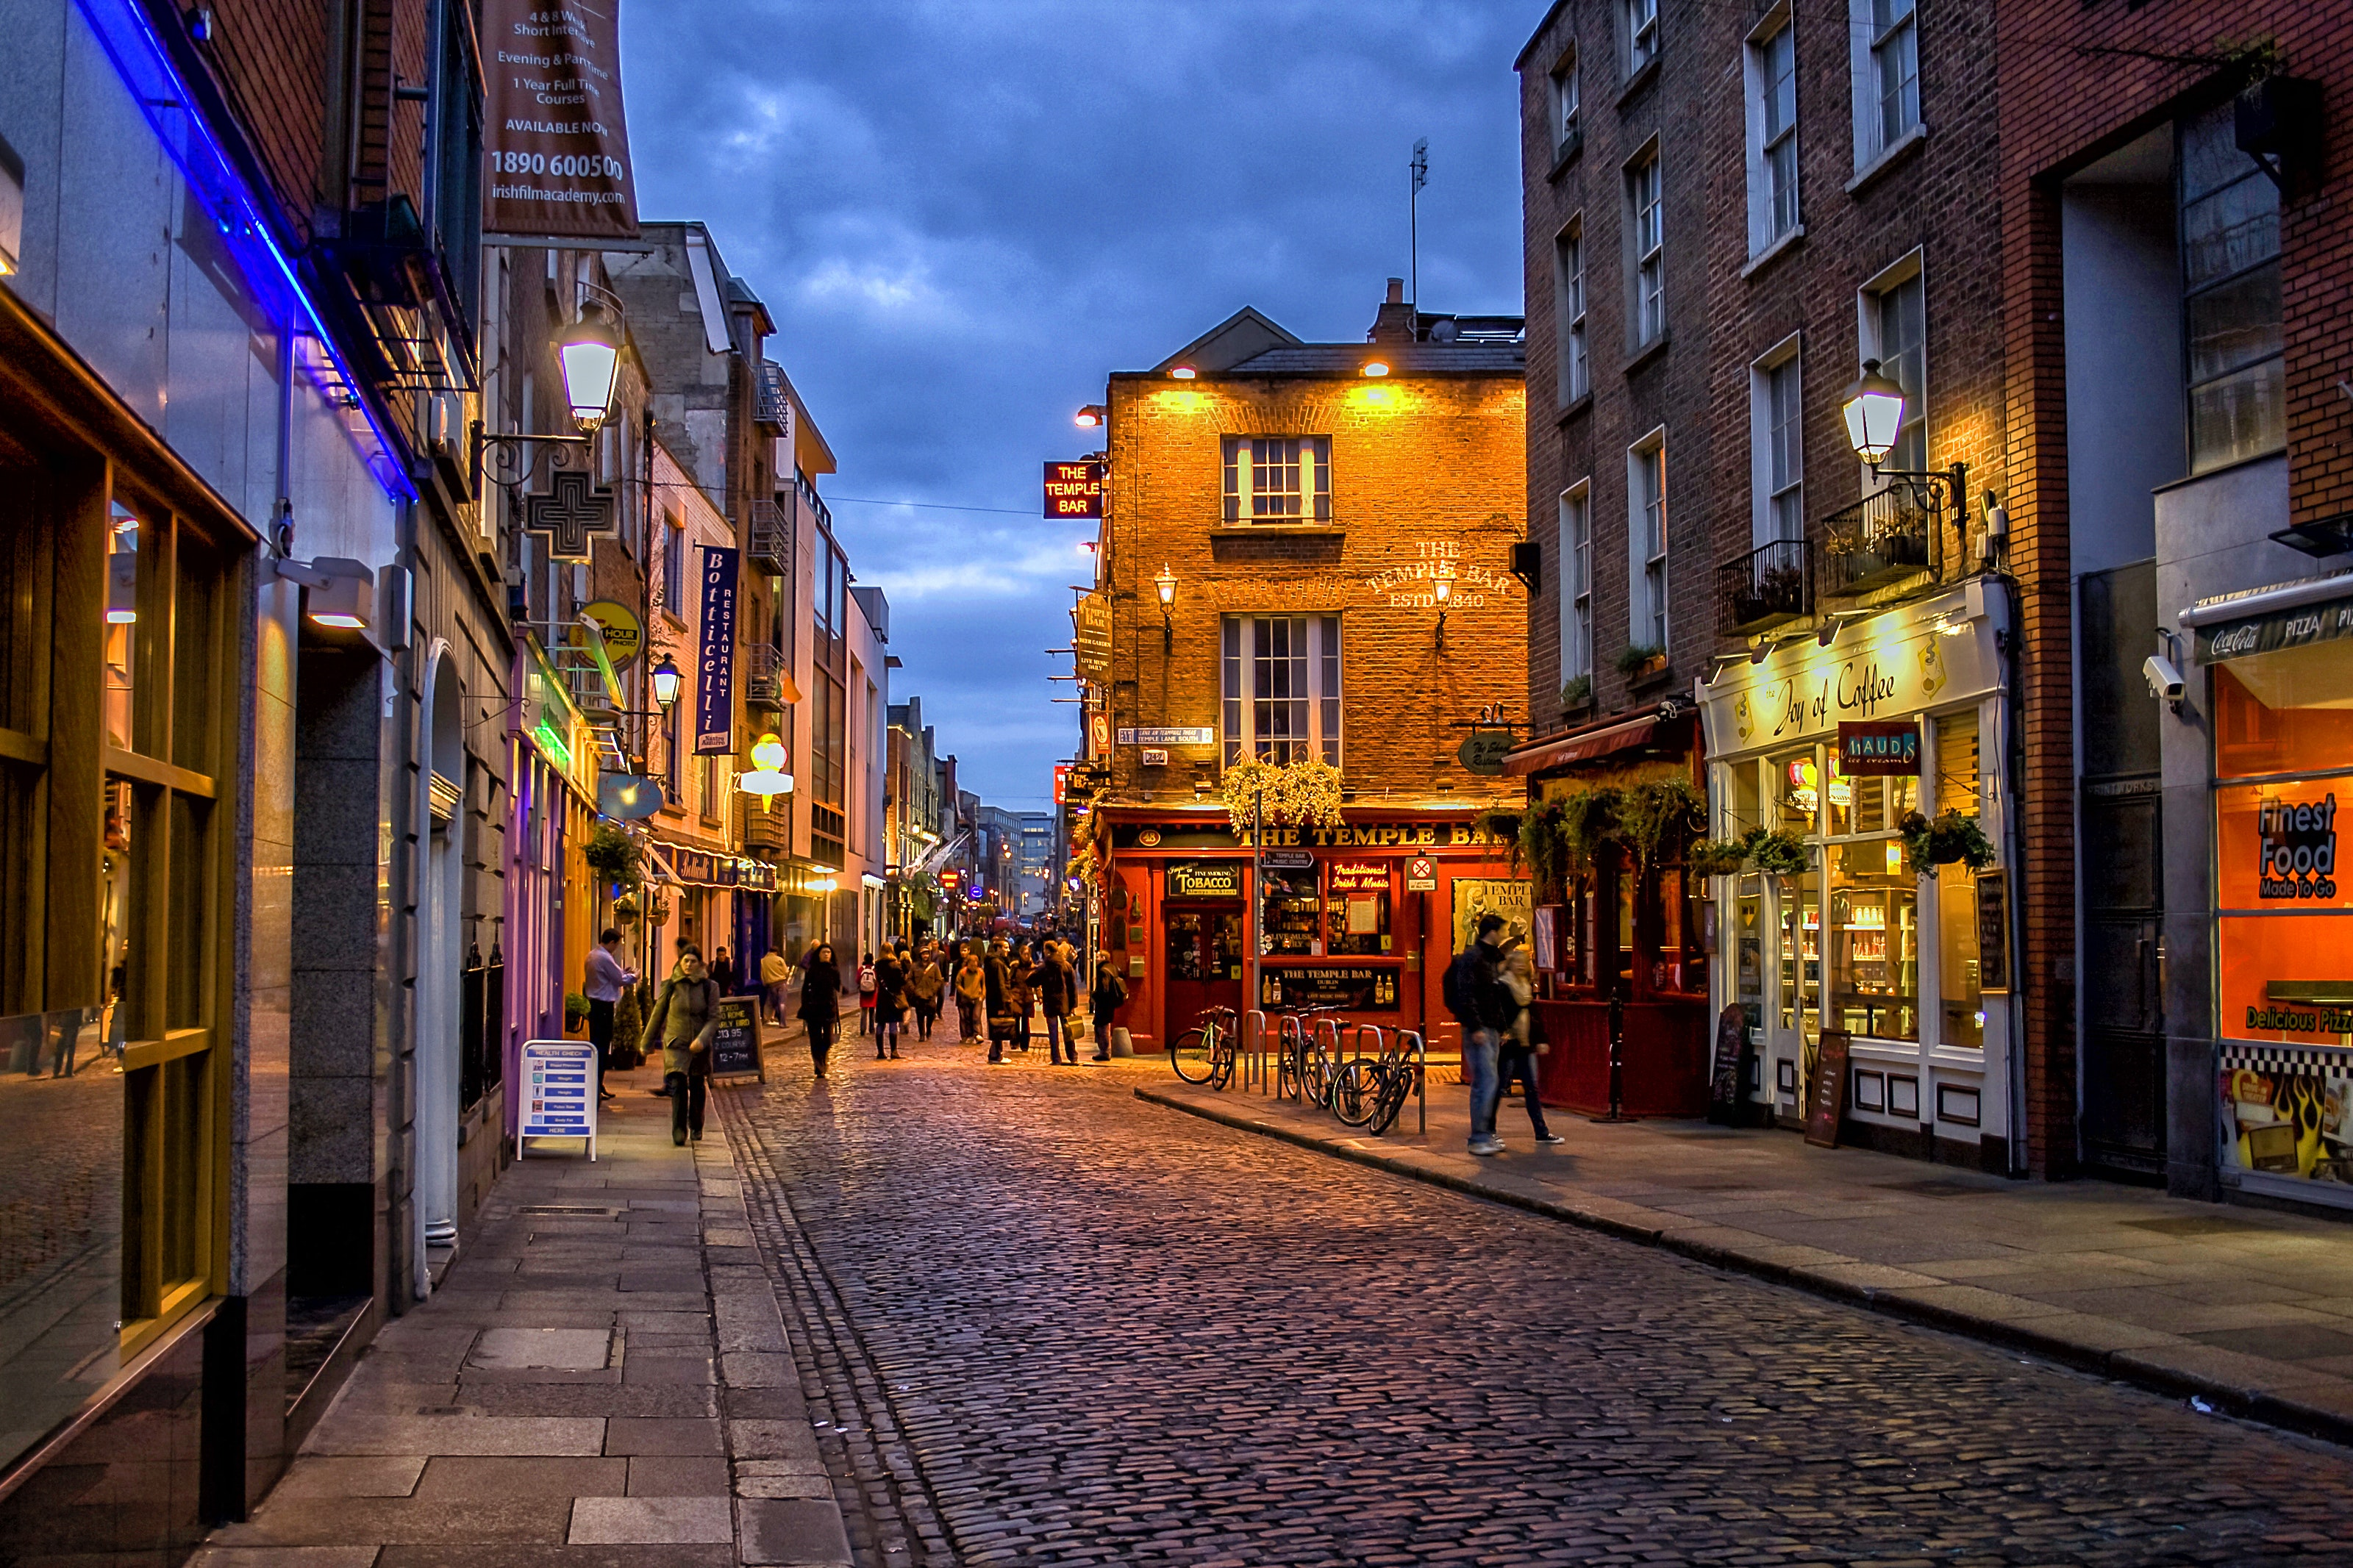 https://lonelyplanetimages.imgix.net/mastheads/stock-photo-temple-bar-district-in-dublin-at-night-100904953%20.jpg?sharp=10&vib=20&w=1200